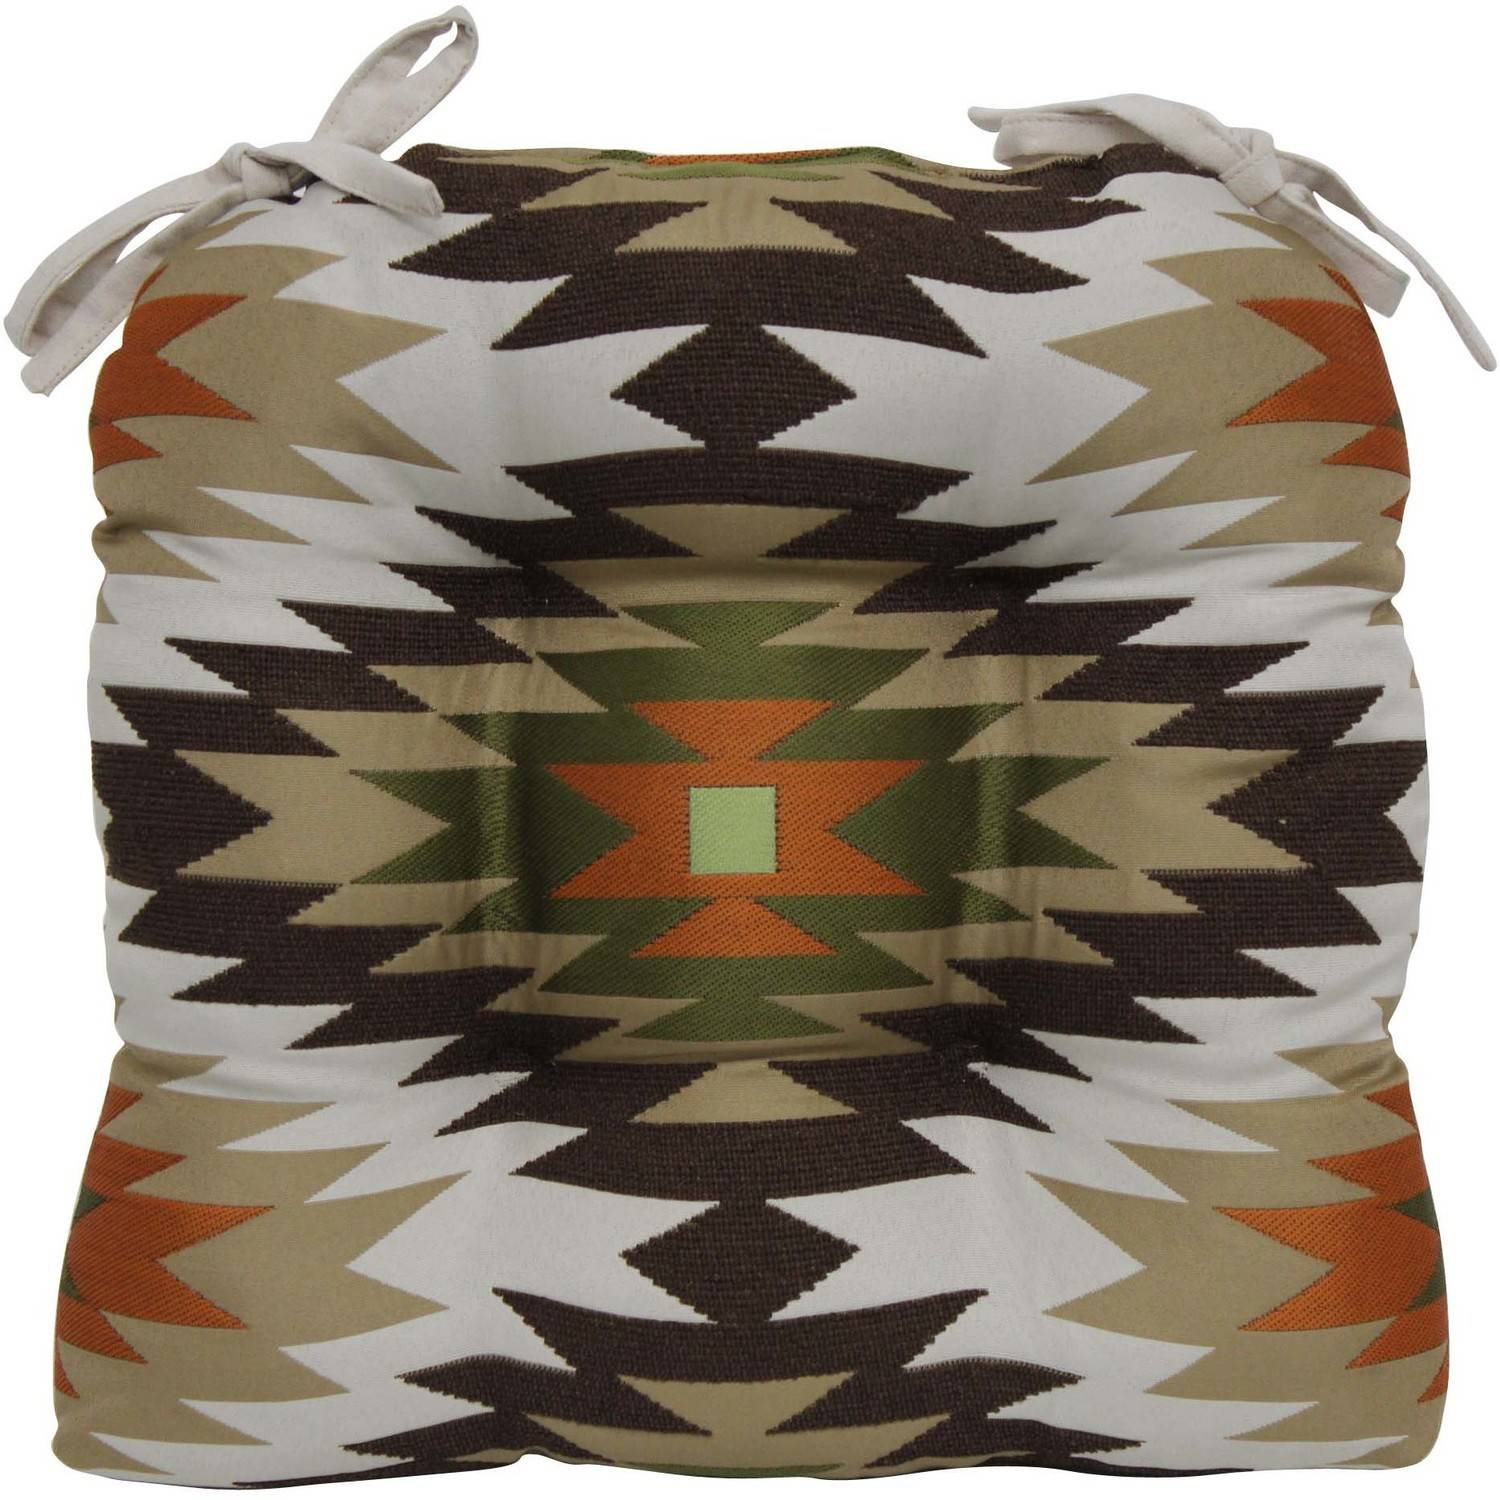 Mainstays Southwest Chair Pad